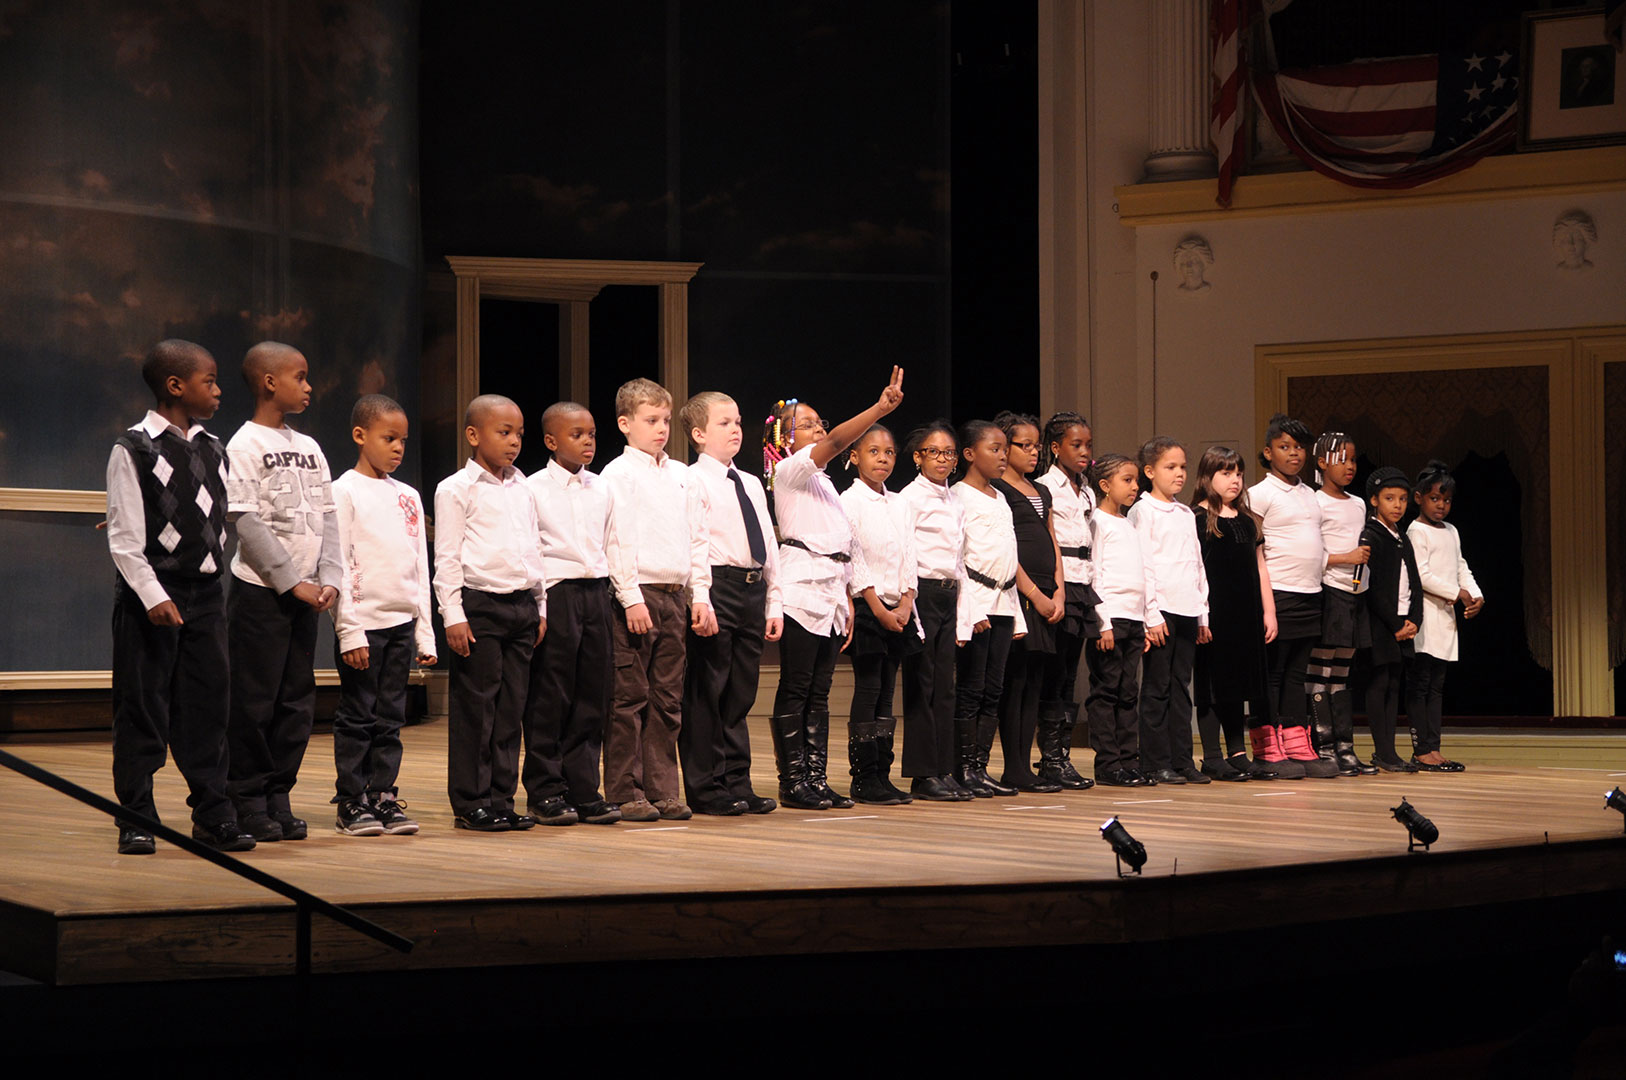 20 fourth graders stand on the stage at Ford's Theatre wearing white tops and black pants. They are reciting a historic speech for the Lincoln Oratory Festival (2012).